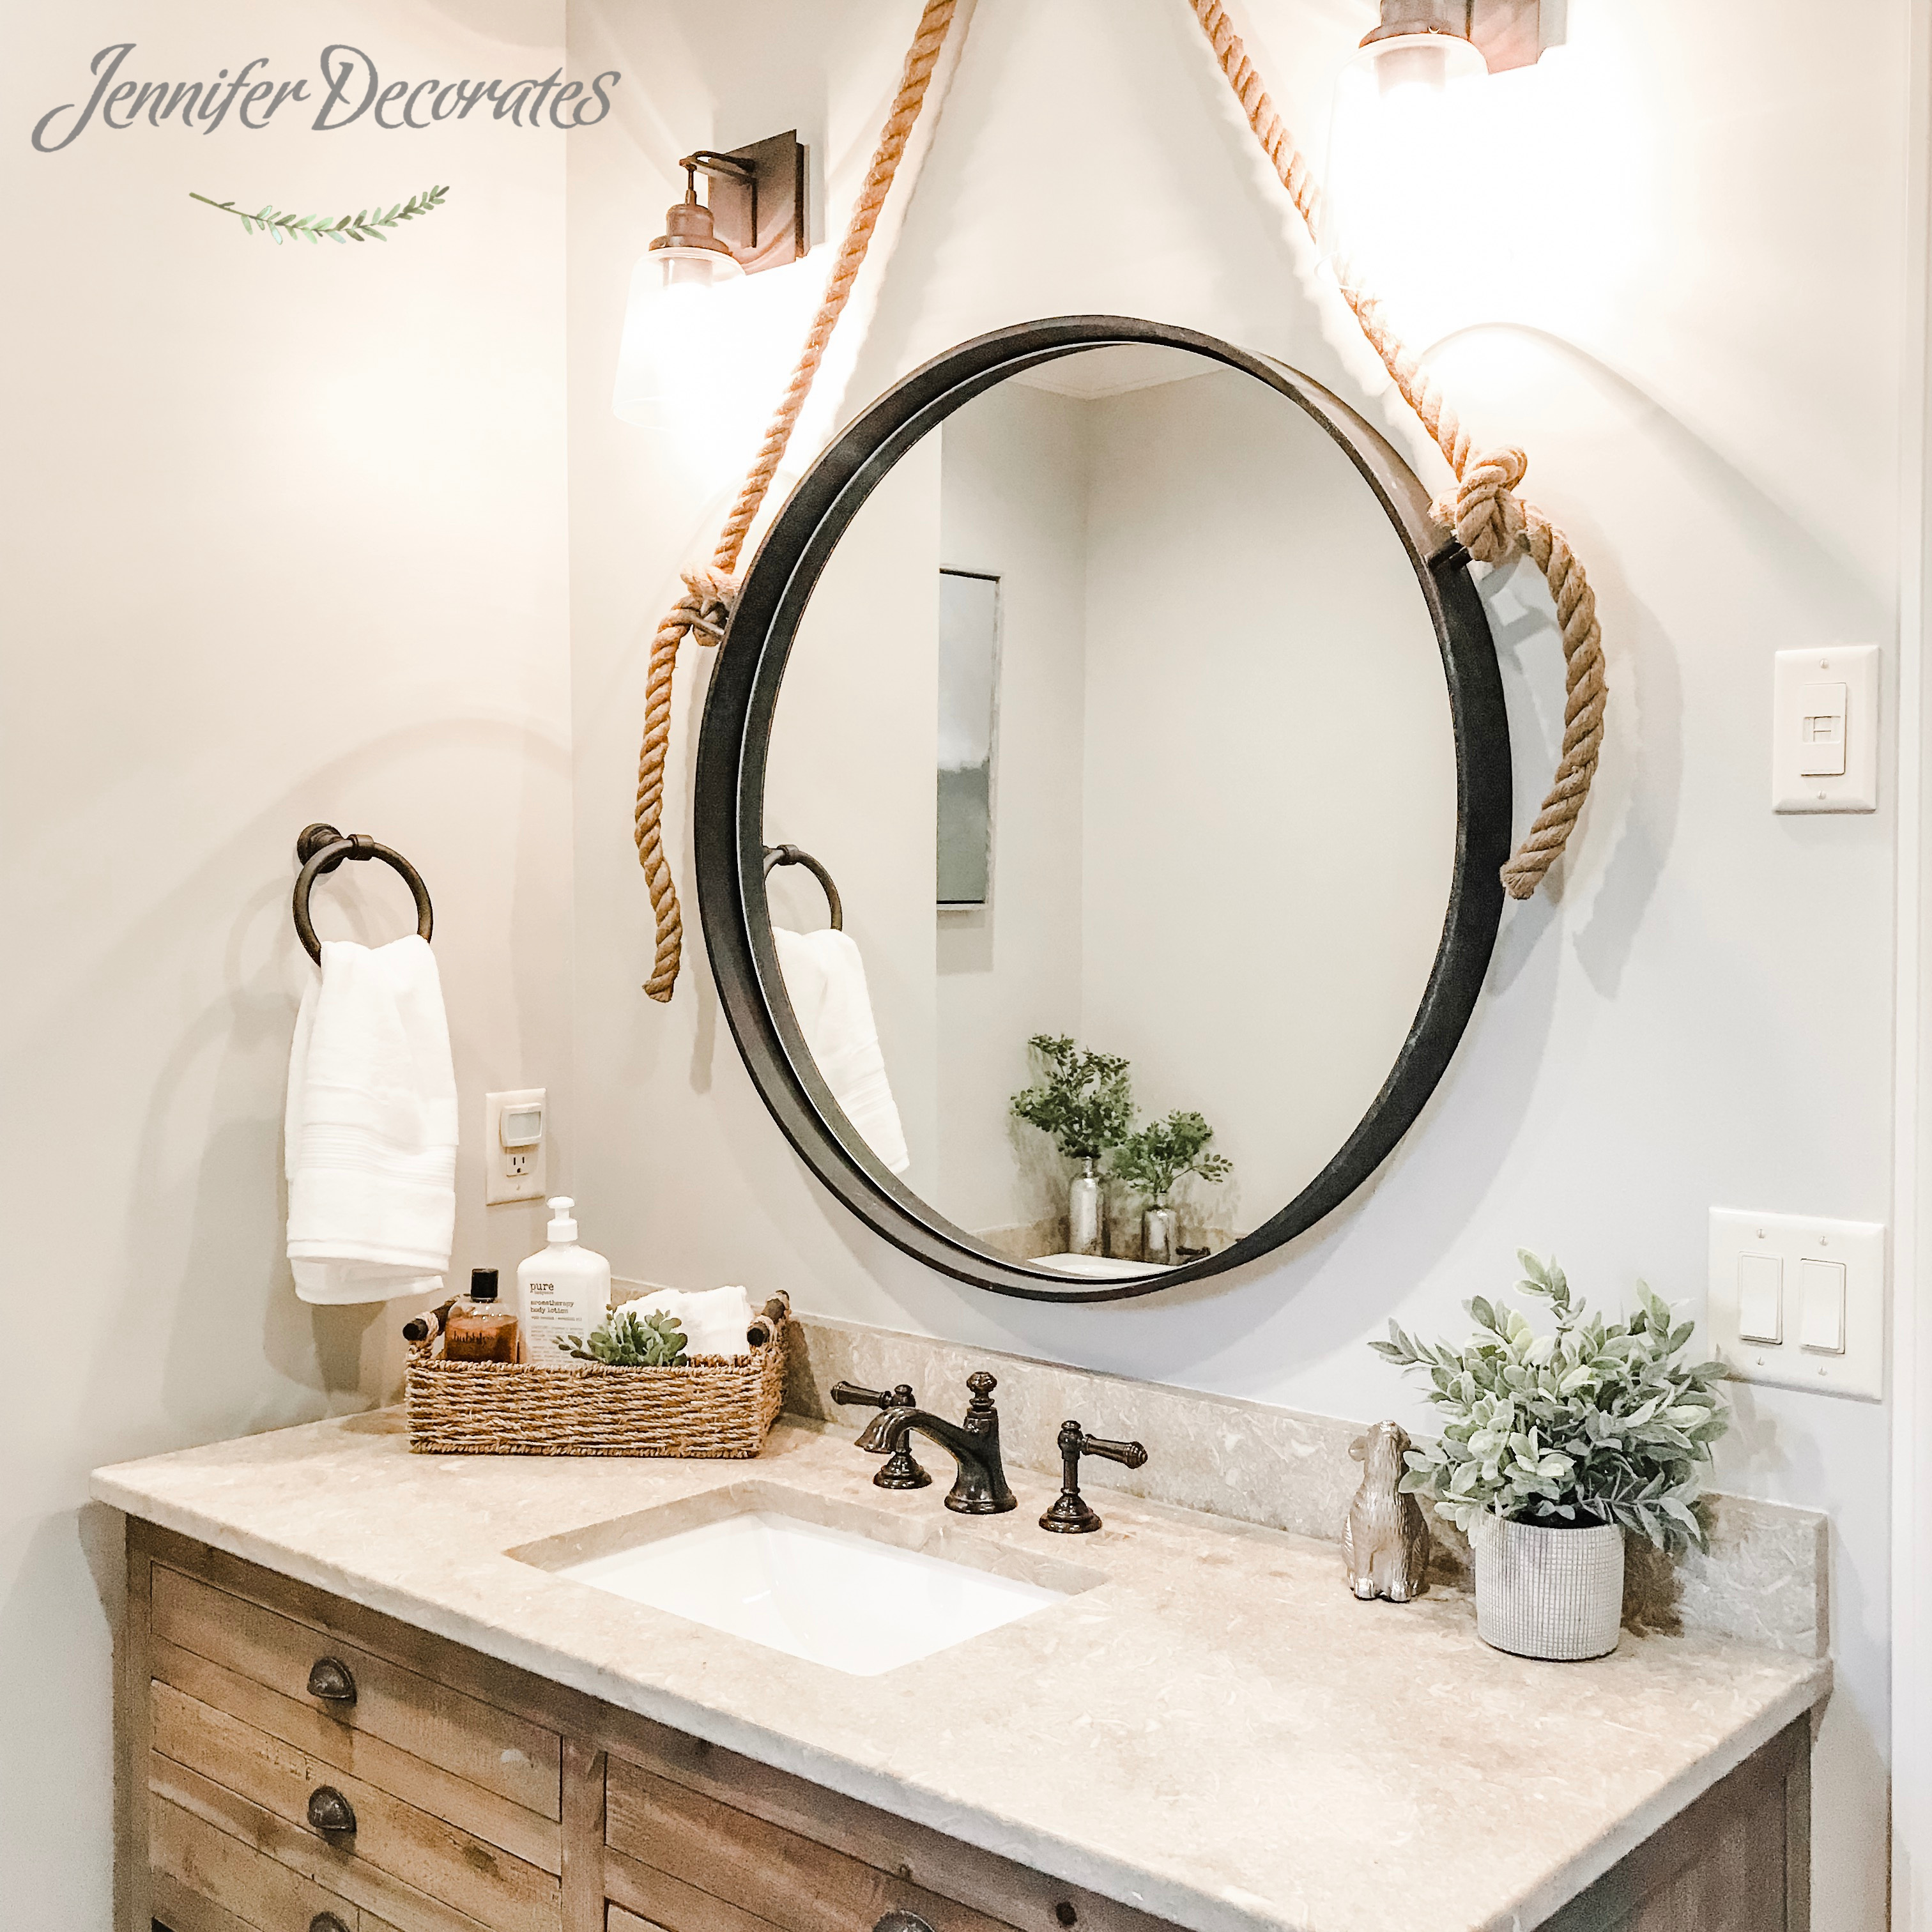 bathroom decorating ideas bathroom decorating ideas to help you create your own little spa  bathroom decorating ideas marvel bathroom decorating ideas to help you